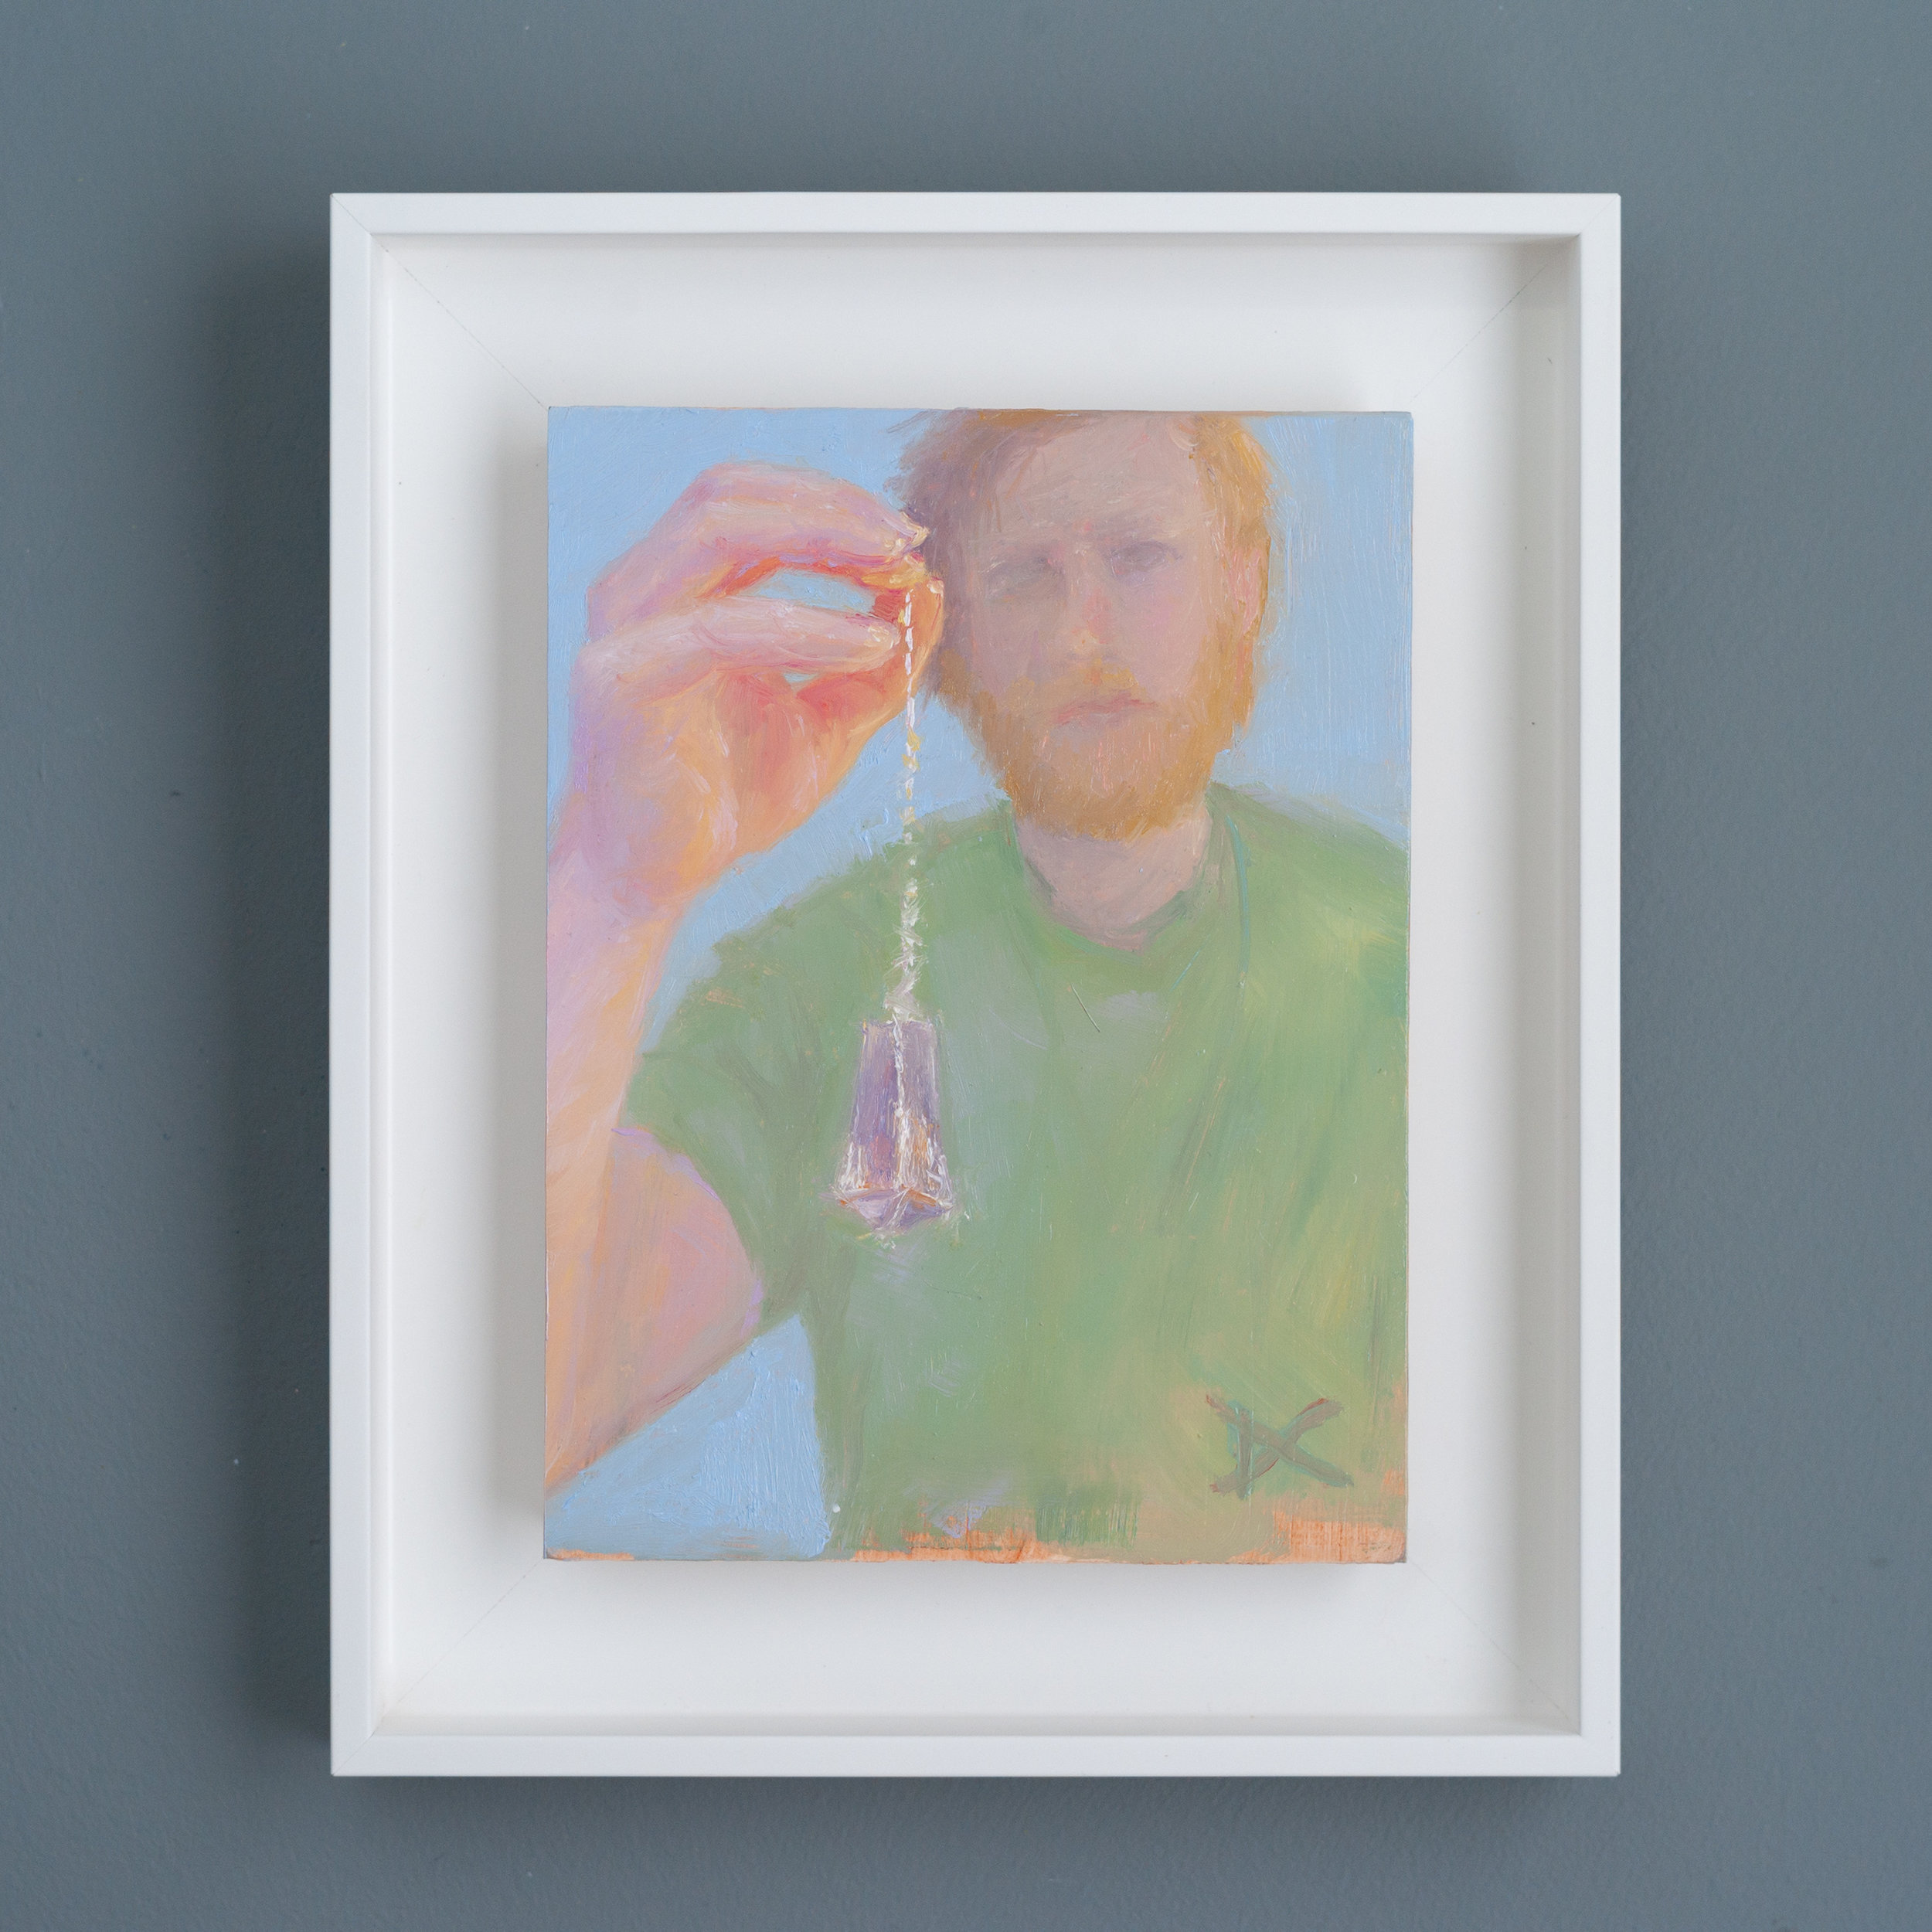 The Spiritual Dowser (Kyle Fetzer). Oil on panel, 8 by 6 inches. Private collection.